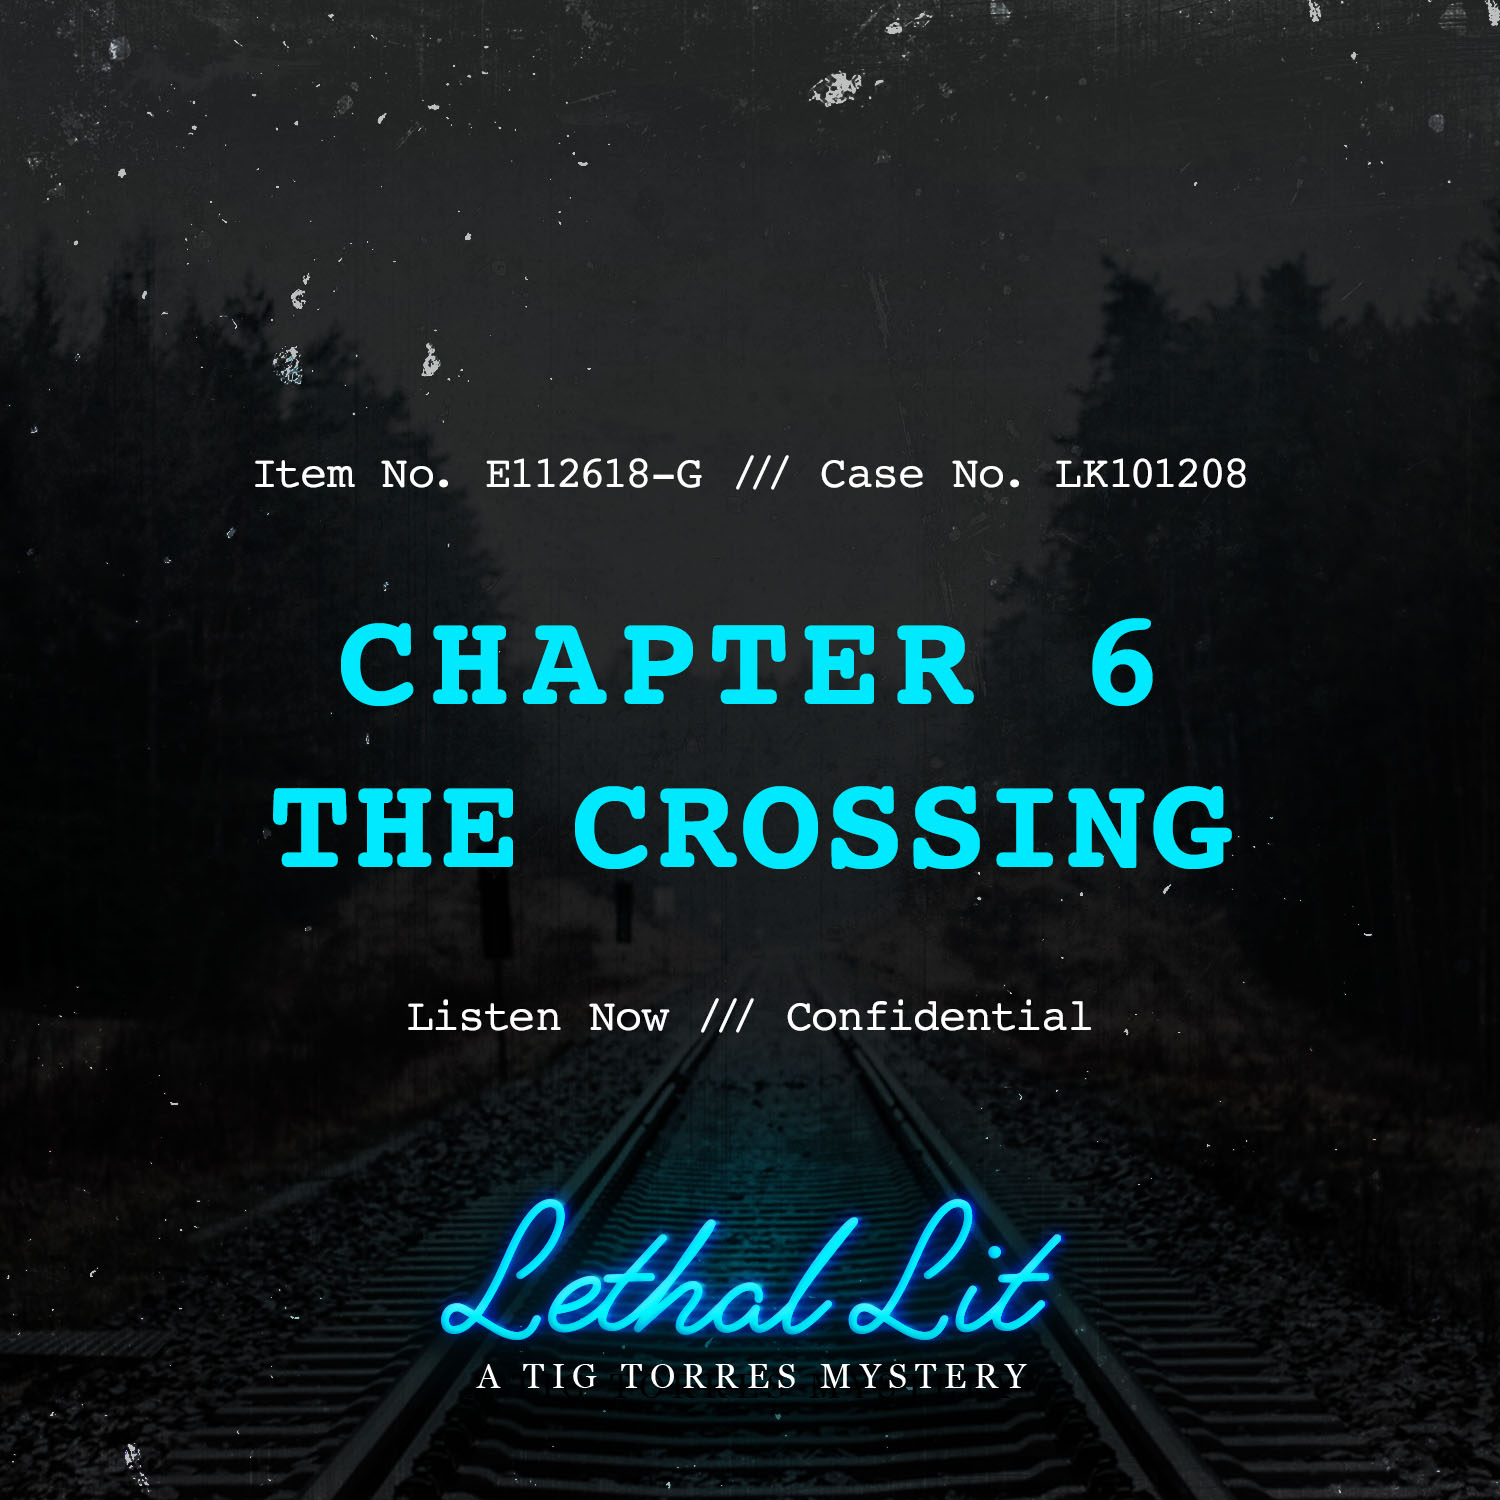 CHAPTER 6: THE CROSSING   LINKS TO LISTEN:   IHeart  |  Apple    |  Spotify  |  Stitcher    |    Google